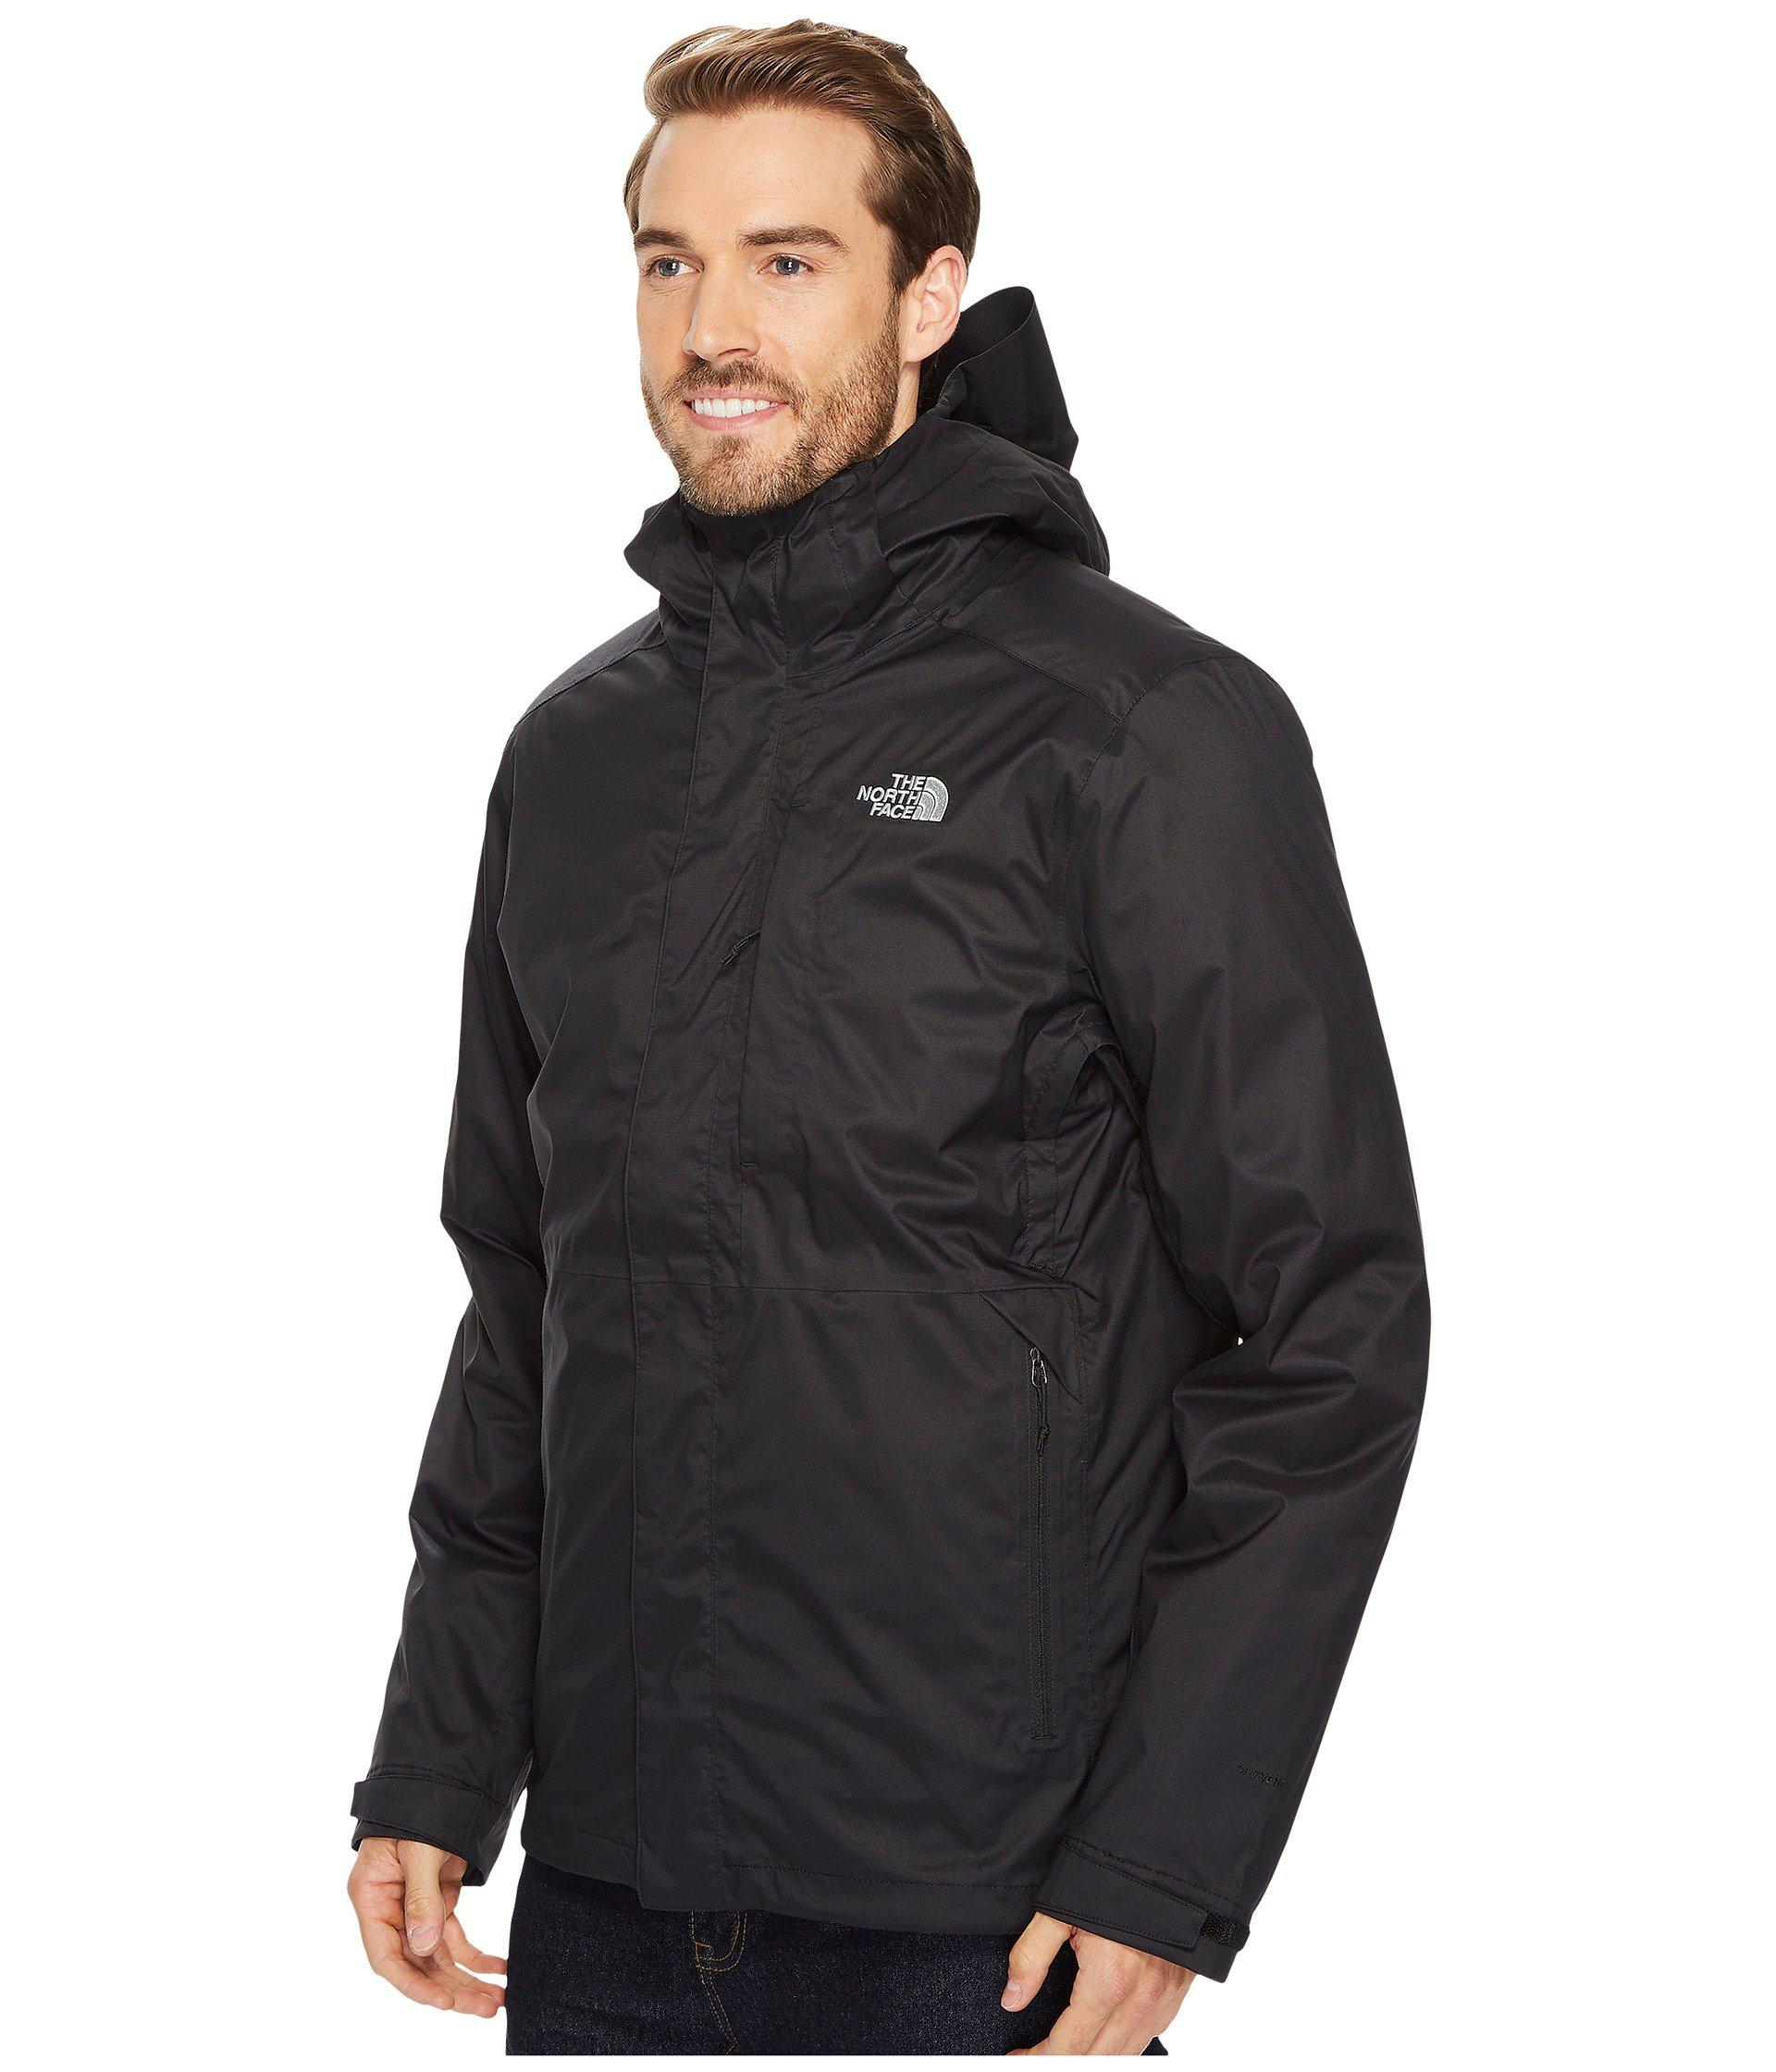 9f325b7f6139 ... germany lyst the north face altier down triclimate jacket in black for  men save 28.96174863387978 4973a